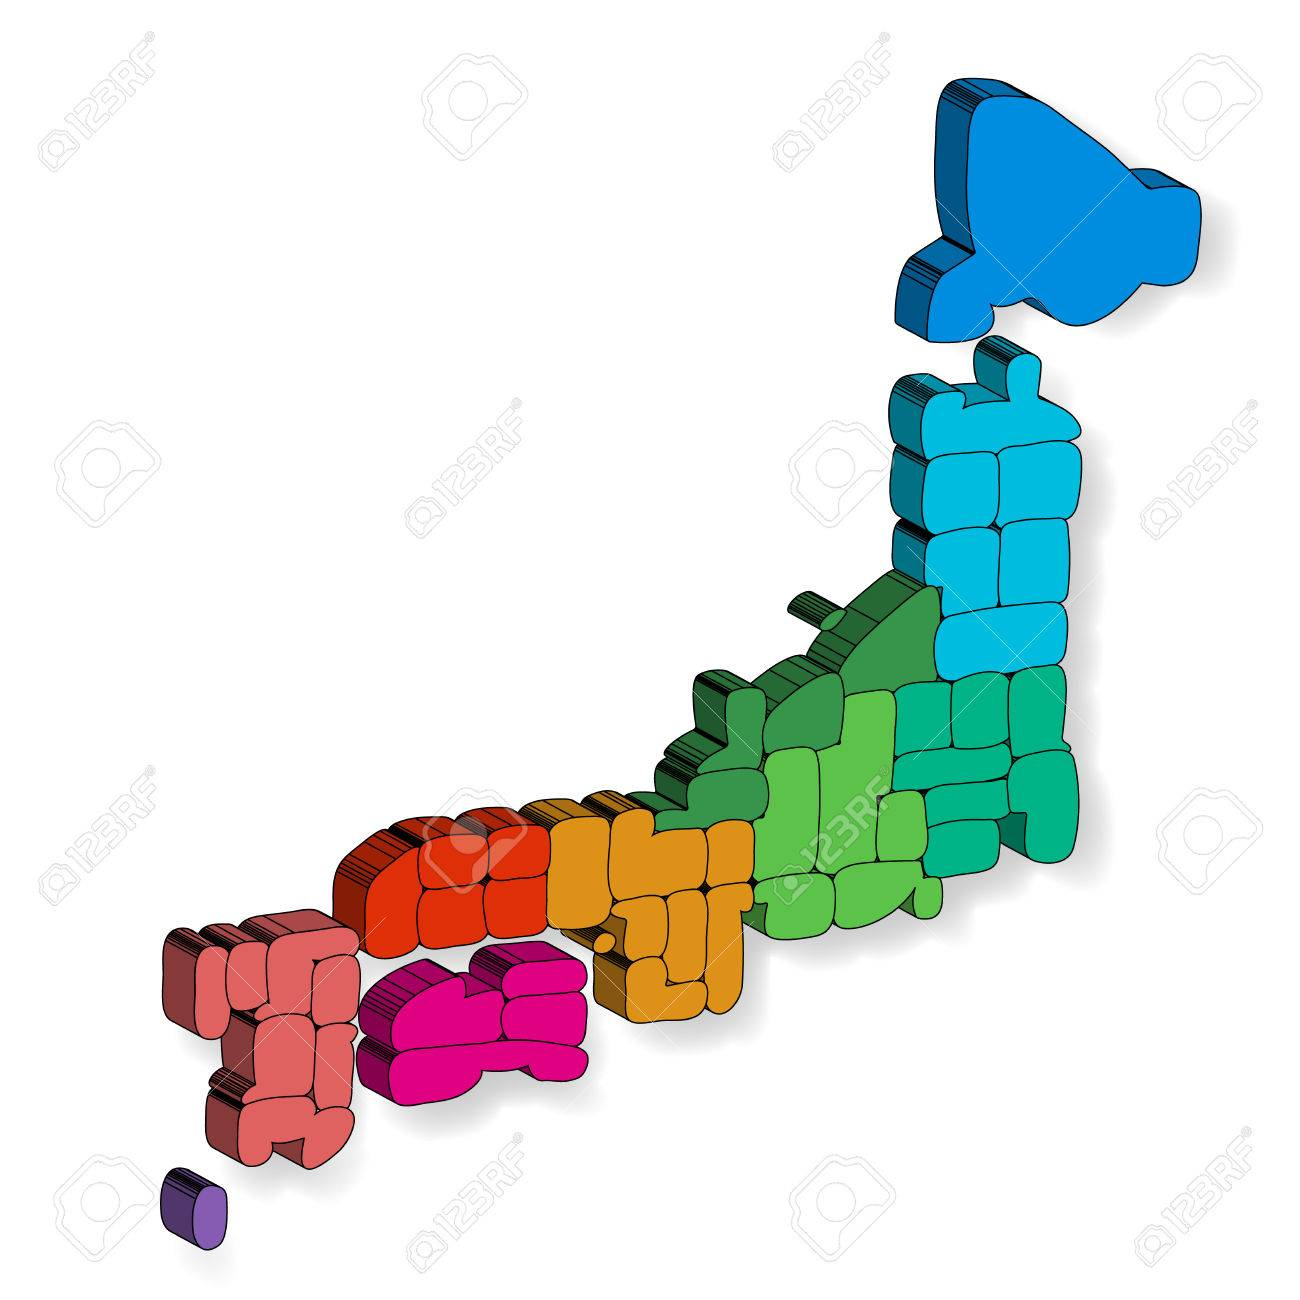 Japan Map D Icon Royalty Free Cliparts Vectors And Stock - Japan map 3d